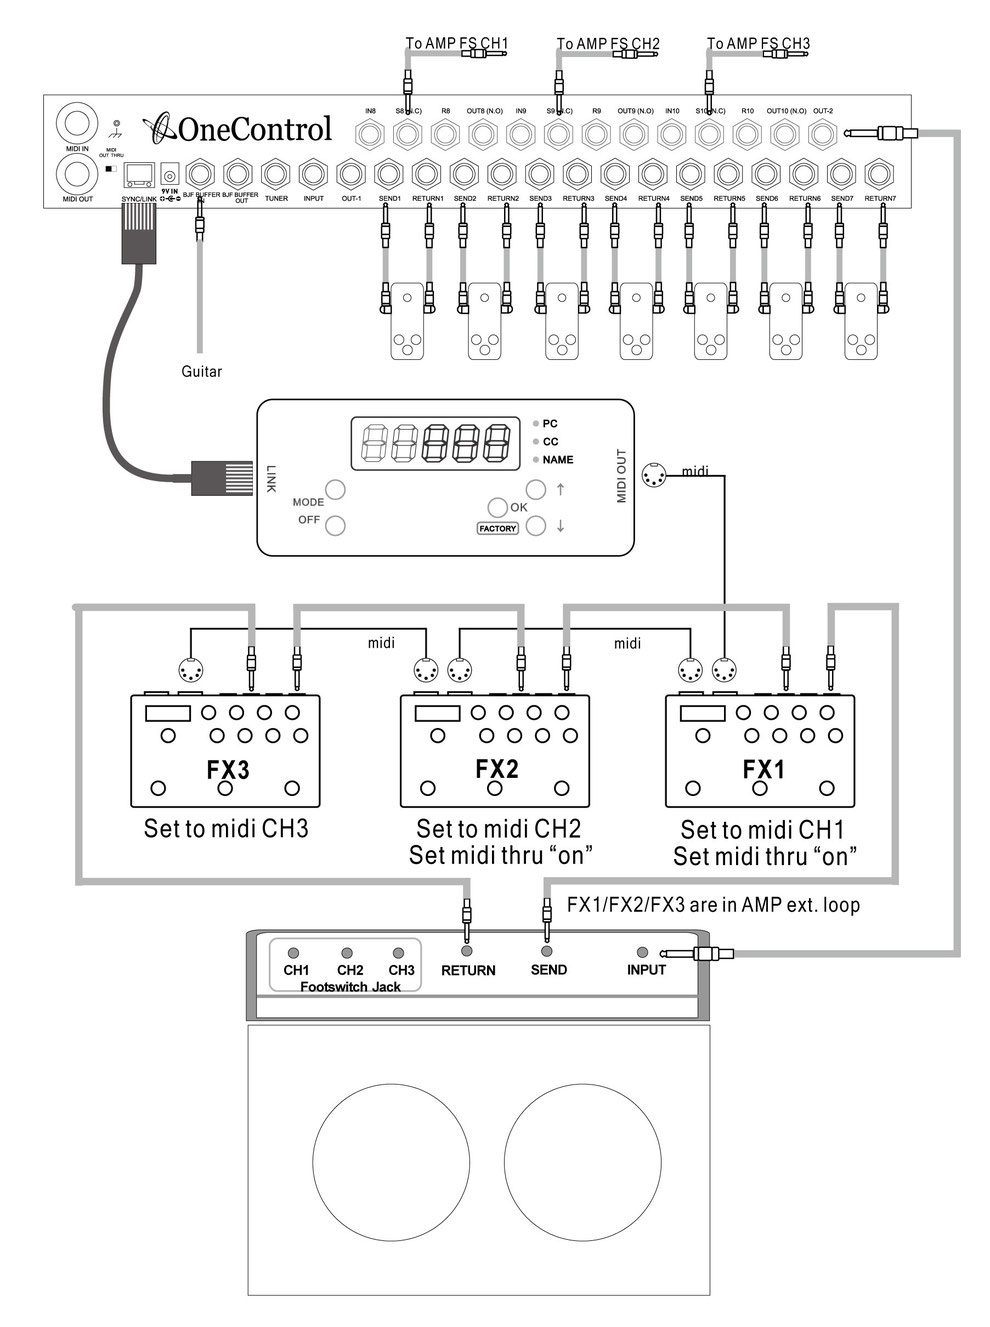 One Control Croc Eye Midi Controller Deluxe Guitars Effects Looper Wiring Diagram Three Separate Loops Use In Switching Such As Amplifier Compatible Effector That Is Connected To The Loop Comes